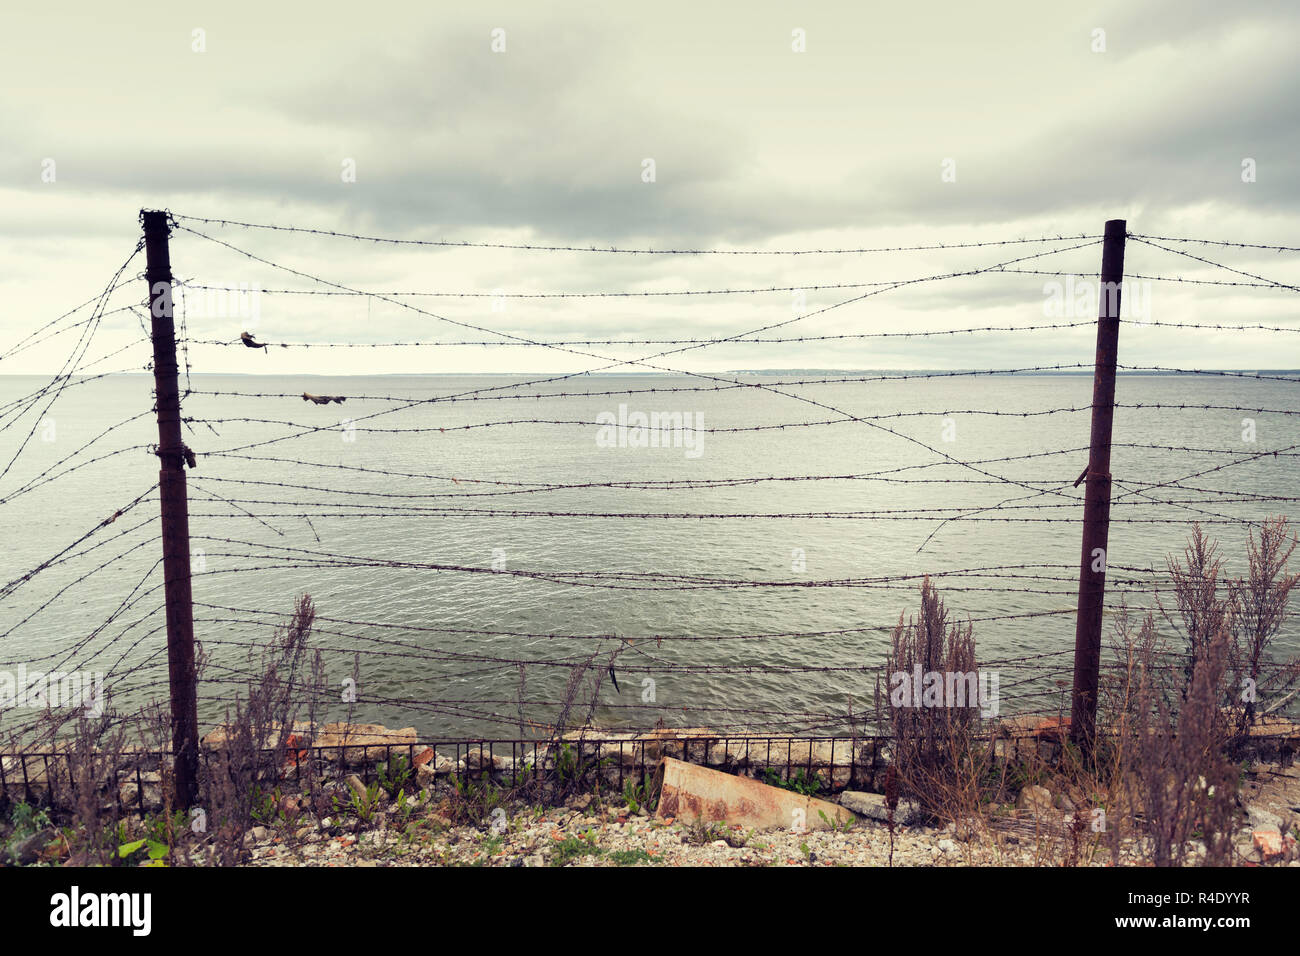 barb wire fence over gray sky and sea Stock Photo